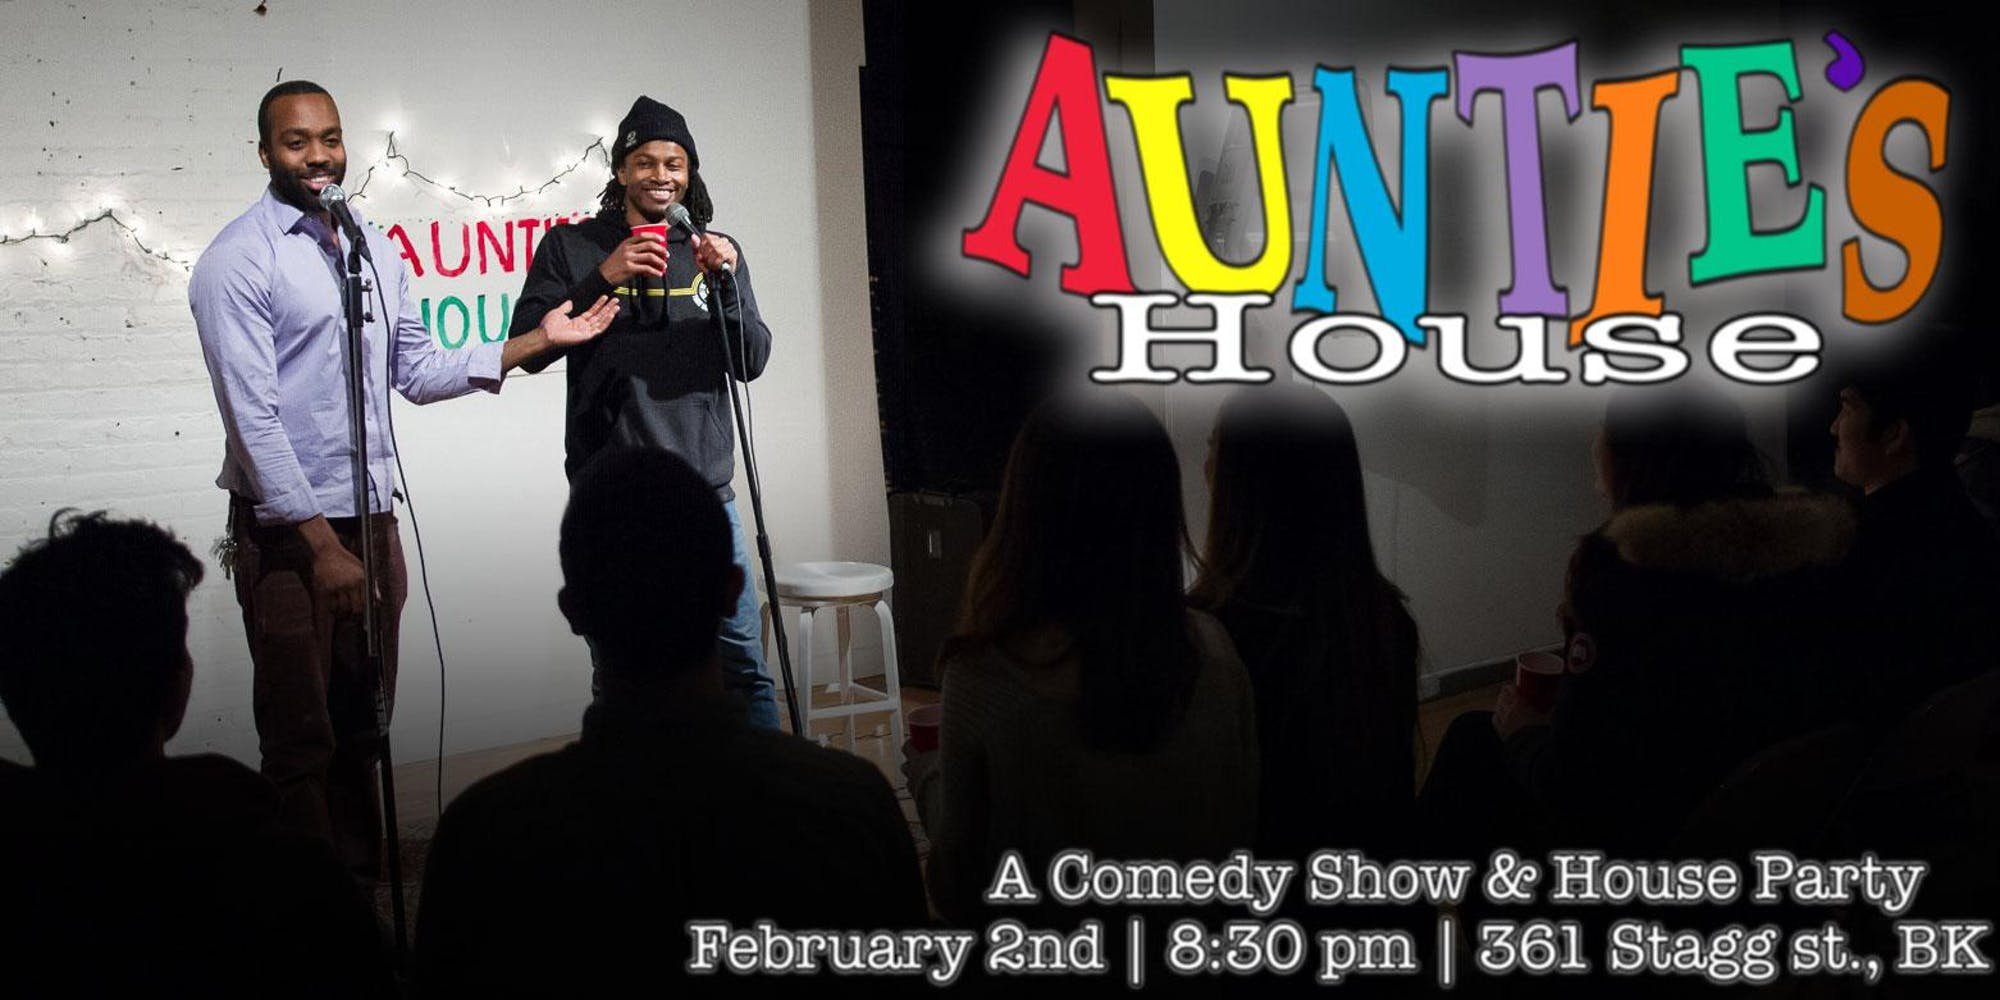 Auntie's House Saturday, Feb 2n 8:3opm-1o:3opm Auntie's House | 361 Stagg St. | New York, NY 11206   Tickets